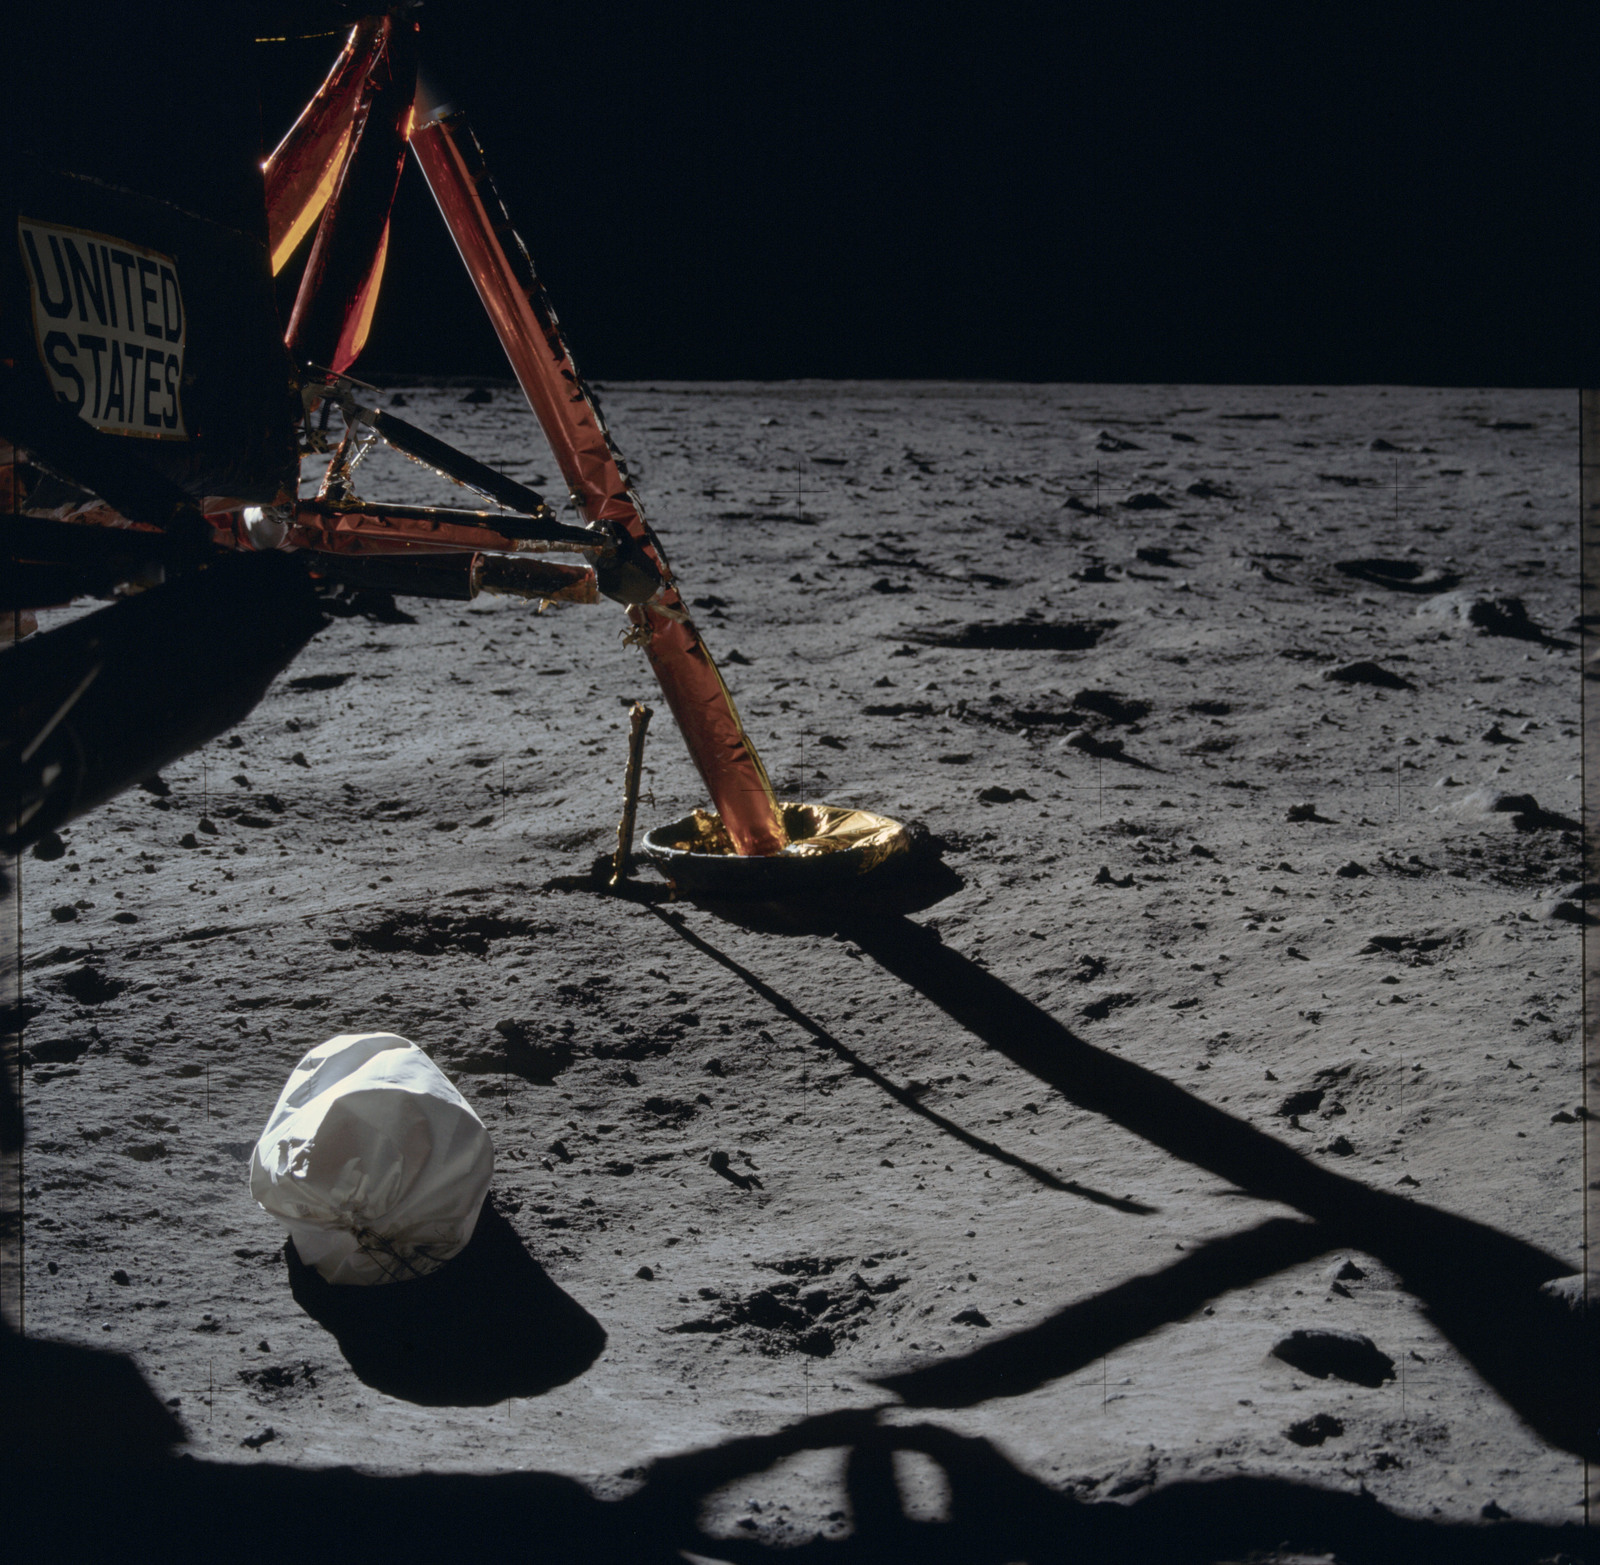 AS11-40-5850 - Apollo 11 - Apollo 11 Mission image - View of the lunar surface and Lunar Module at Tranquility Base